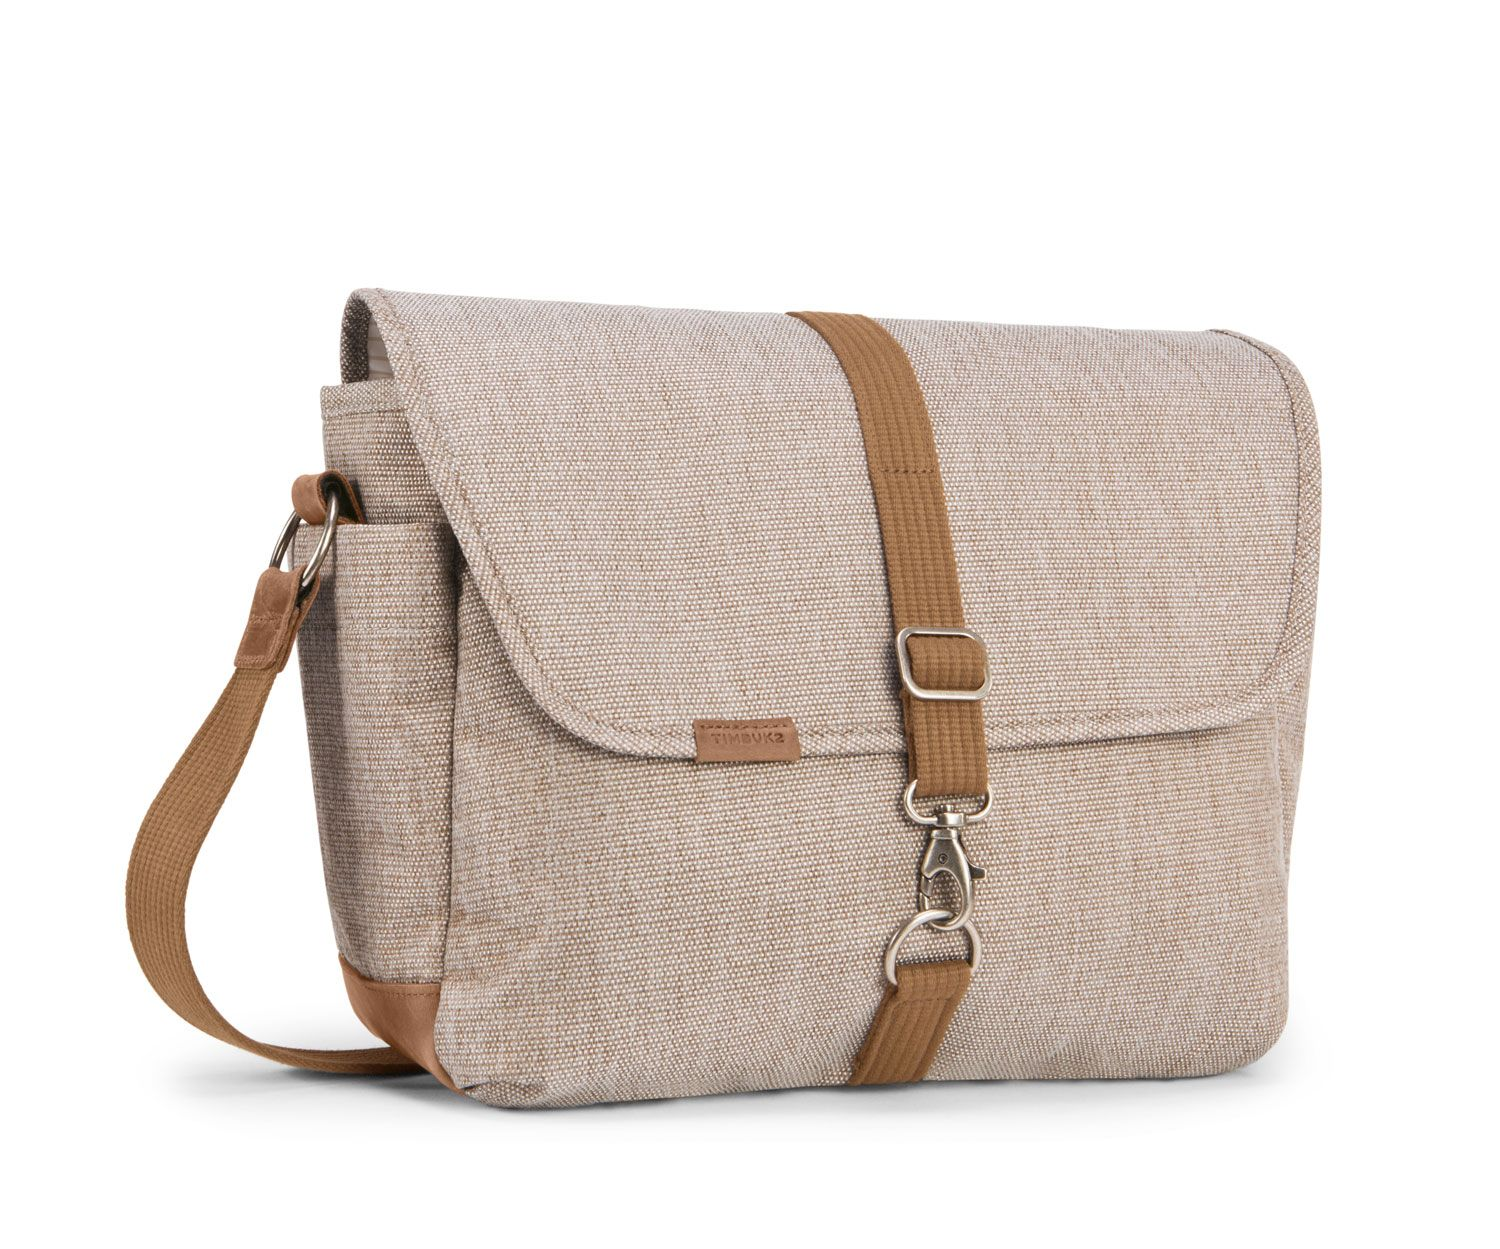 Sutro | Messenger Bags for Women | Timbuk2 | Timbuk2 Products ...